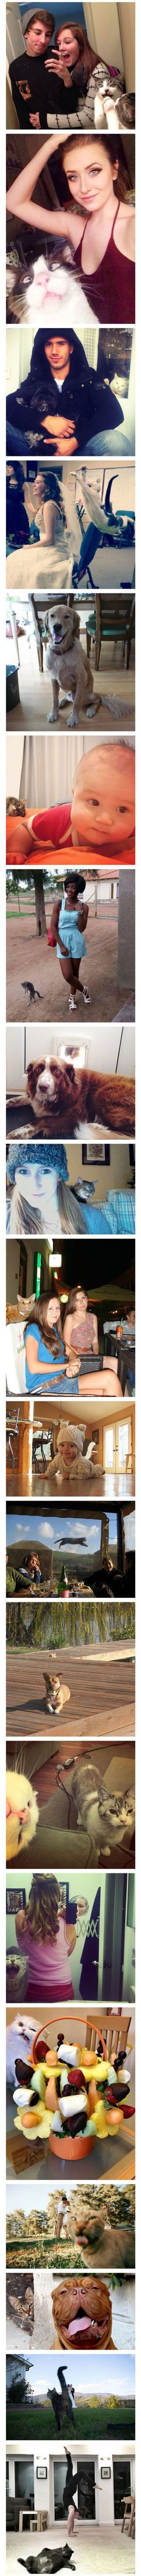 Funny Cat Photobombs Cats Foxes And Others Pinterest Cat - 20 hilarious cat photobombs